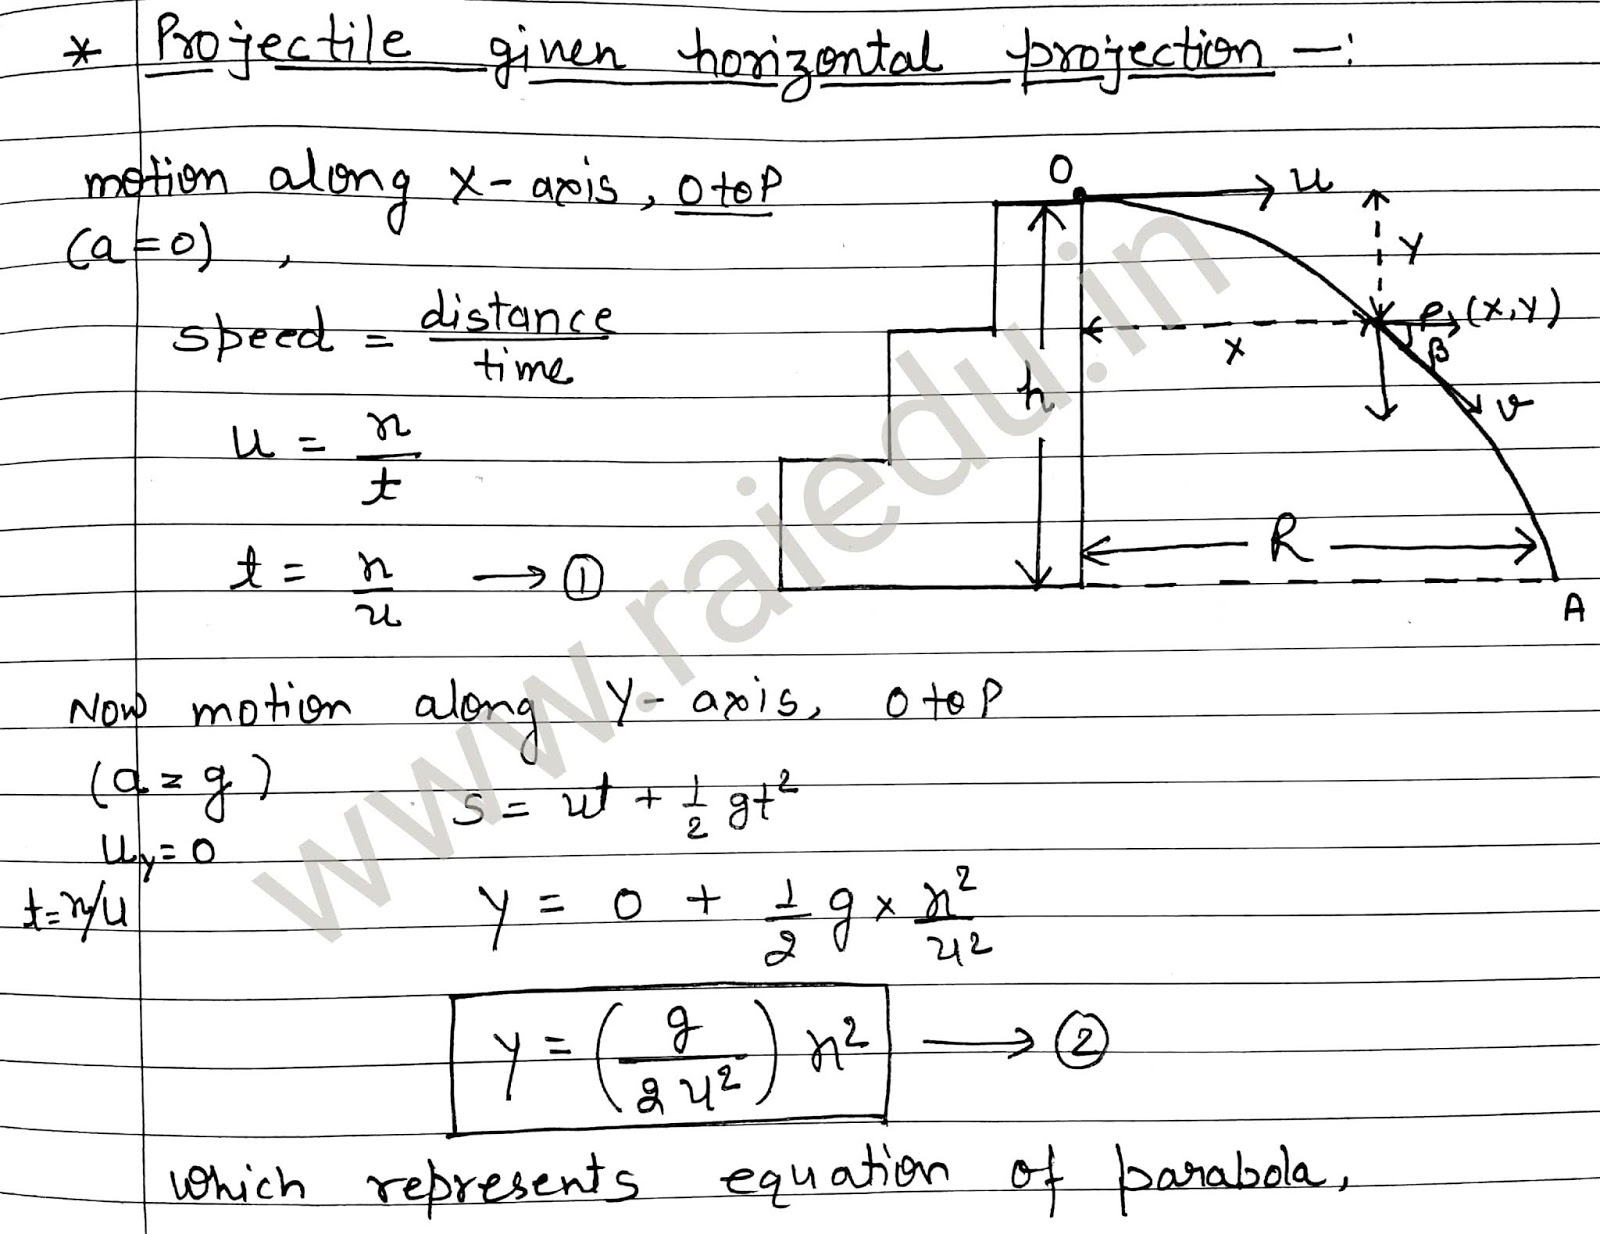 RAIEDU in: Horizontal Projection of projectile from certain height